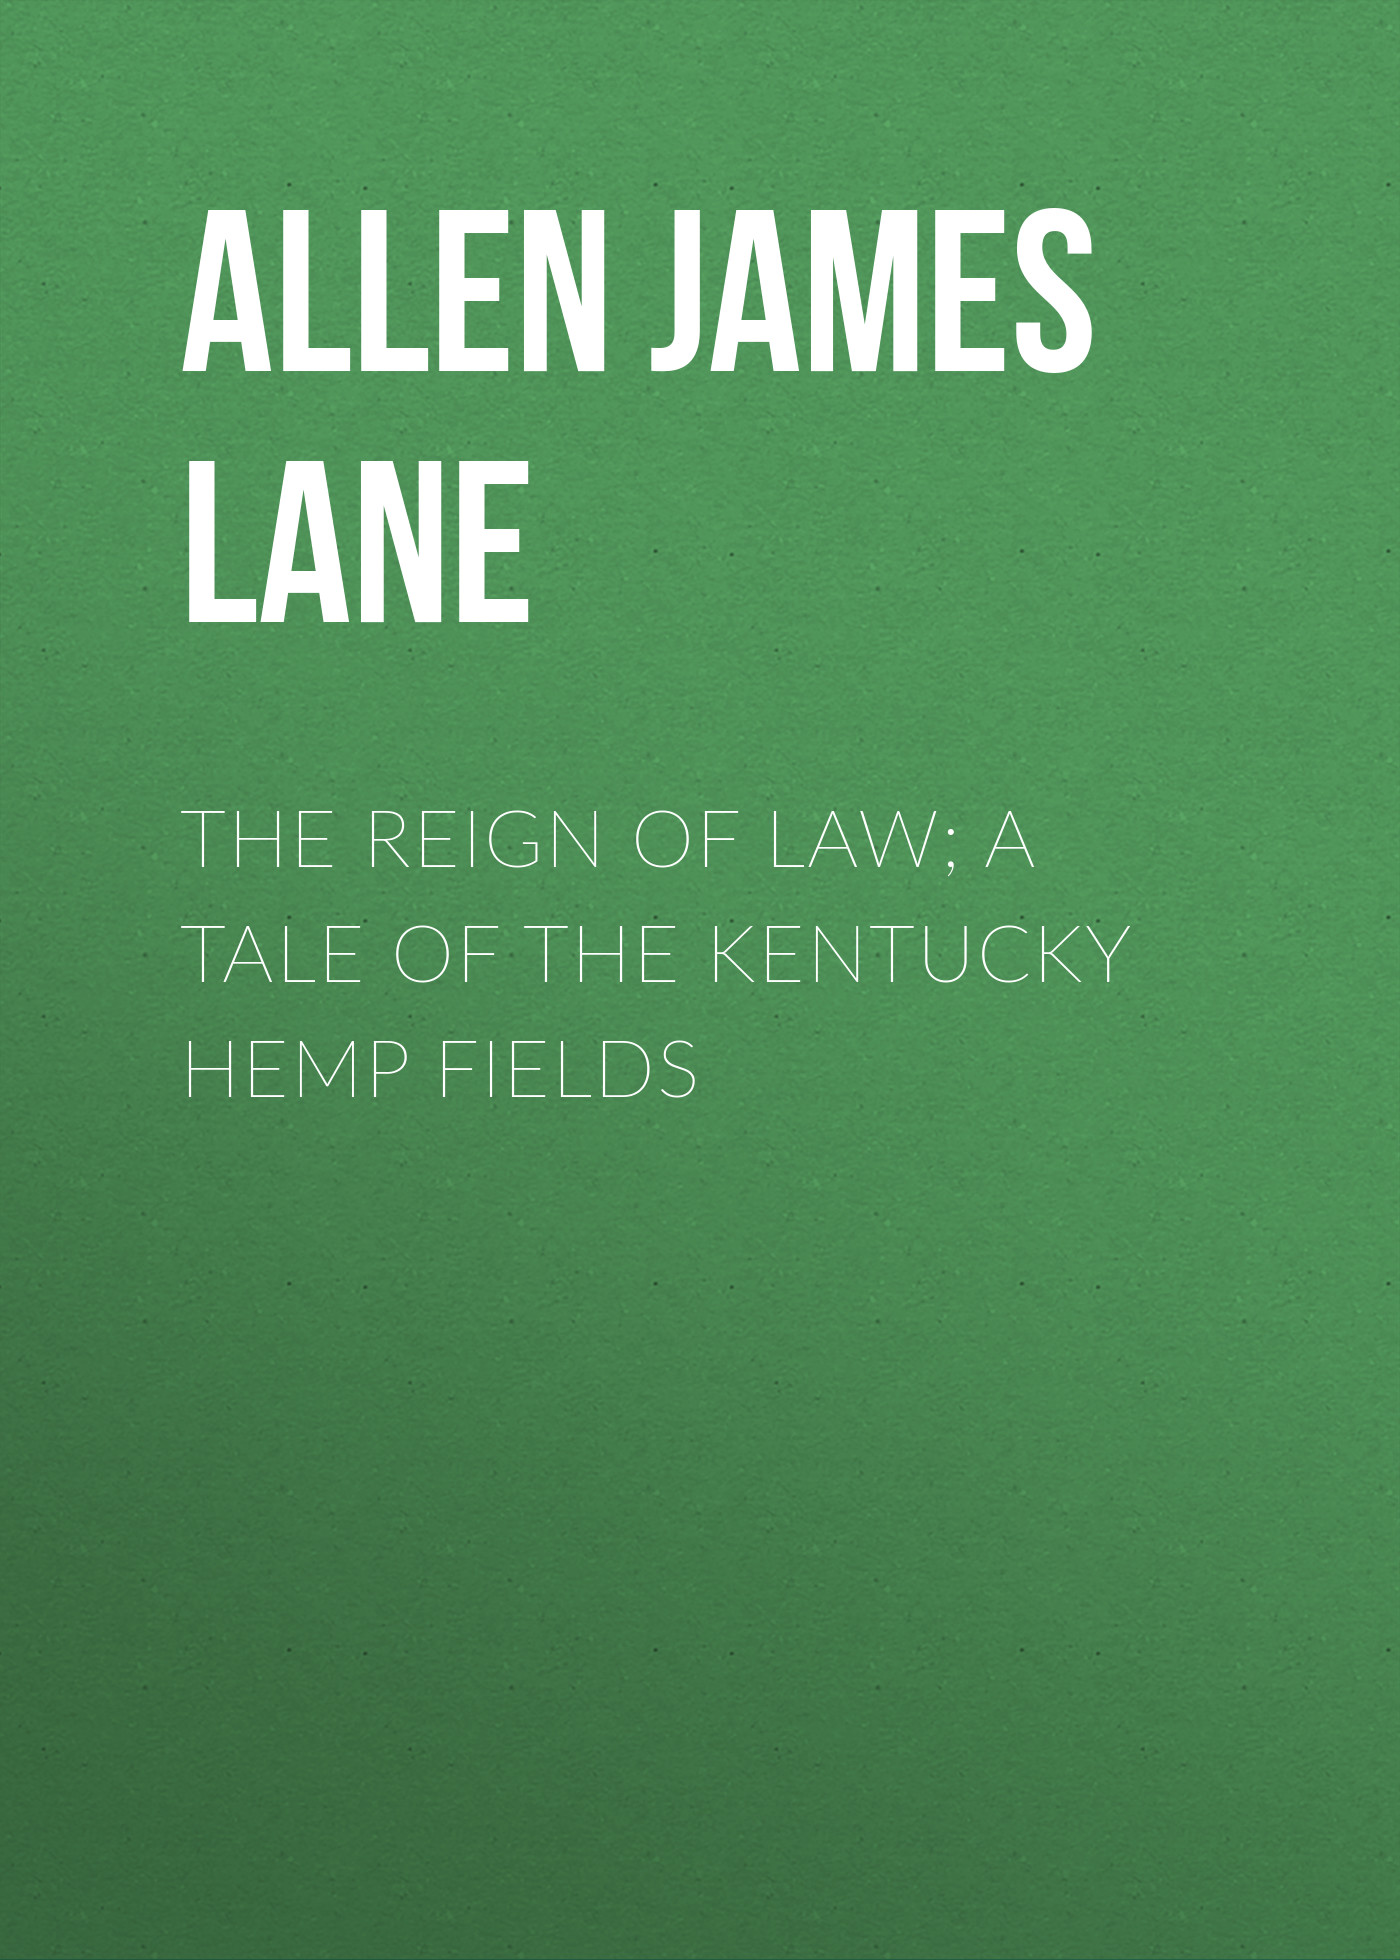 Allen James Lane The Reign of Law; a tale of the Kentucky hemp fields rene guenon christopher james northbourne james richard wetmore the reign of quantity and the signs of the times